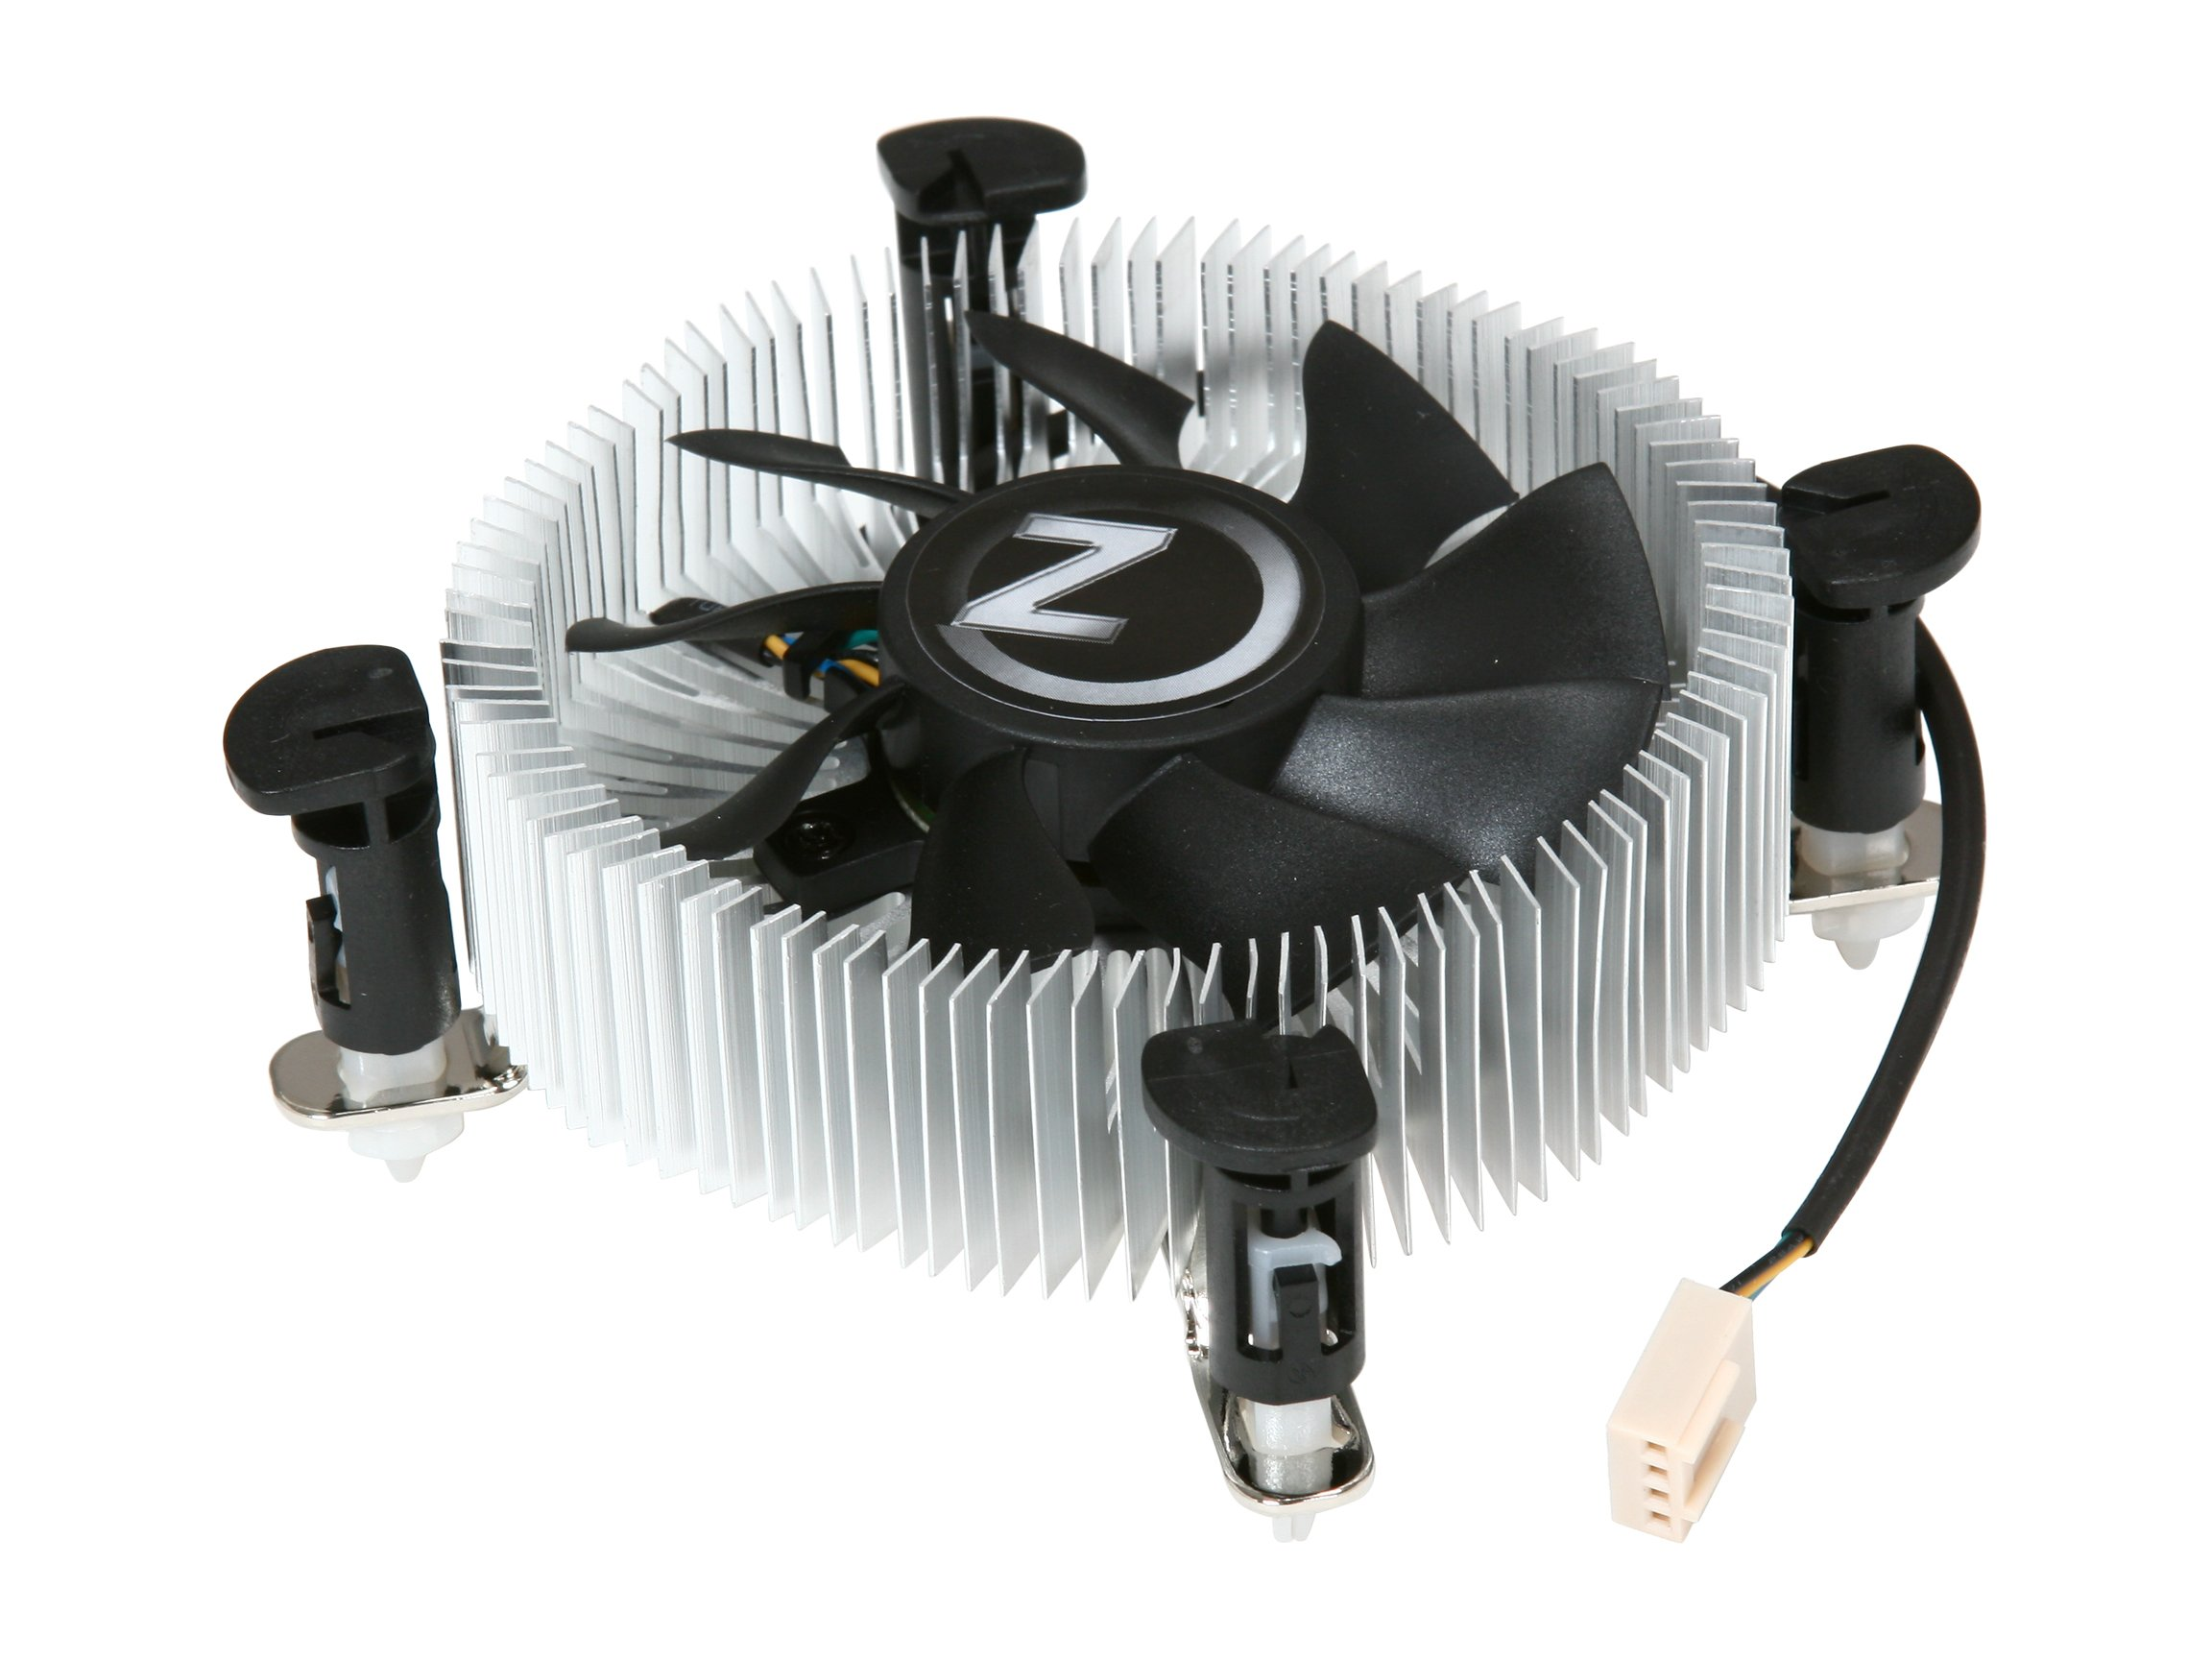 Rosewill 80mm Sleeve Low Profile CPU Cooler RCX-Z775-LP Black